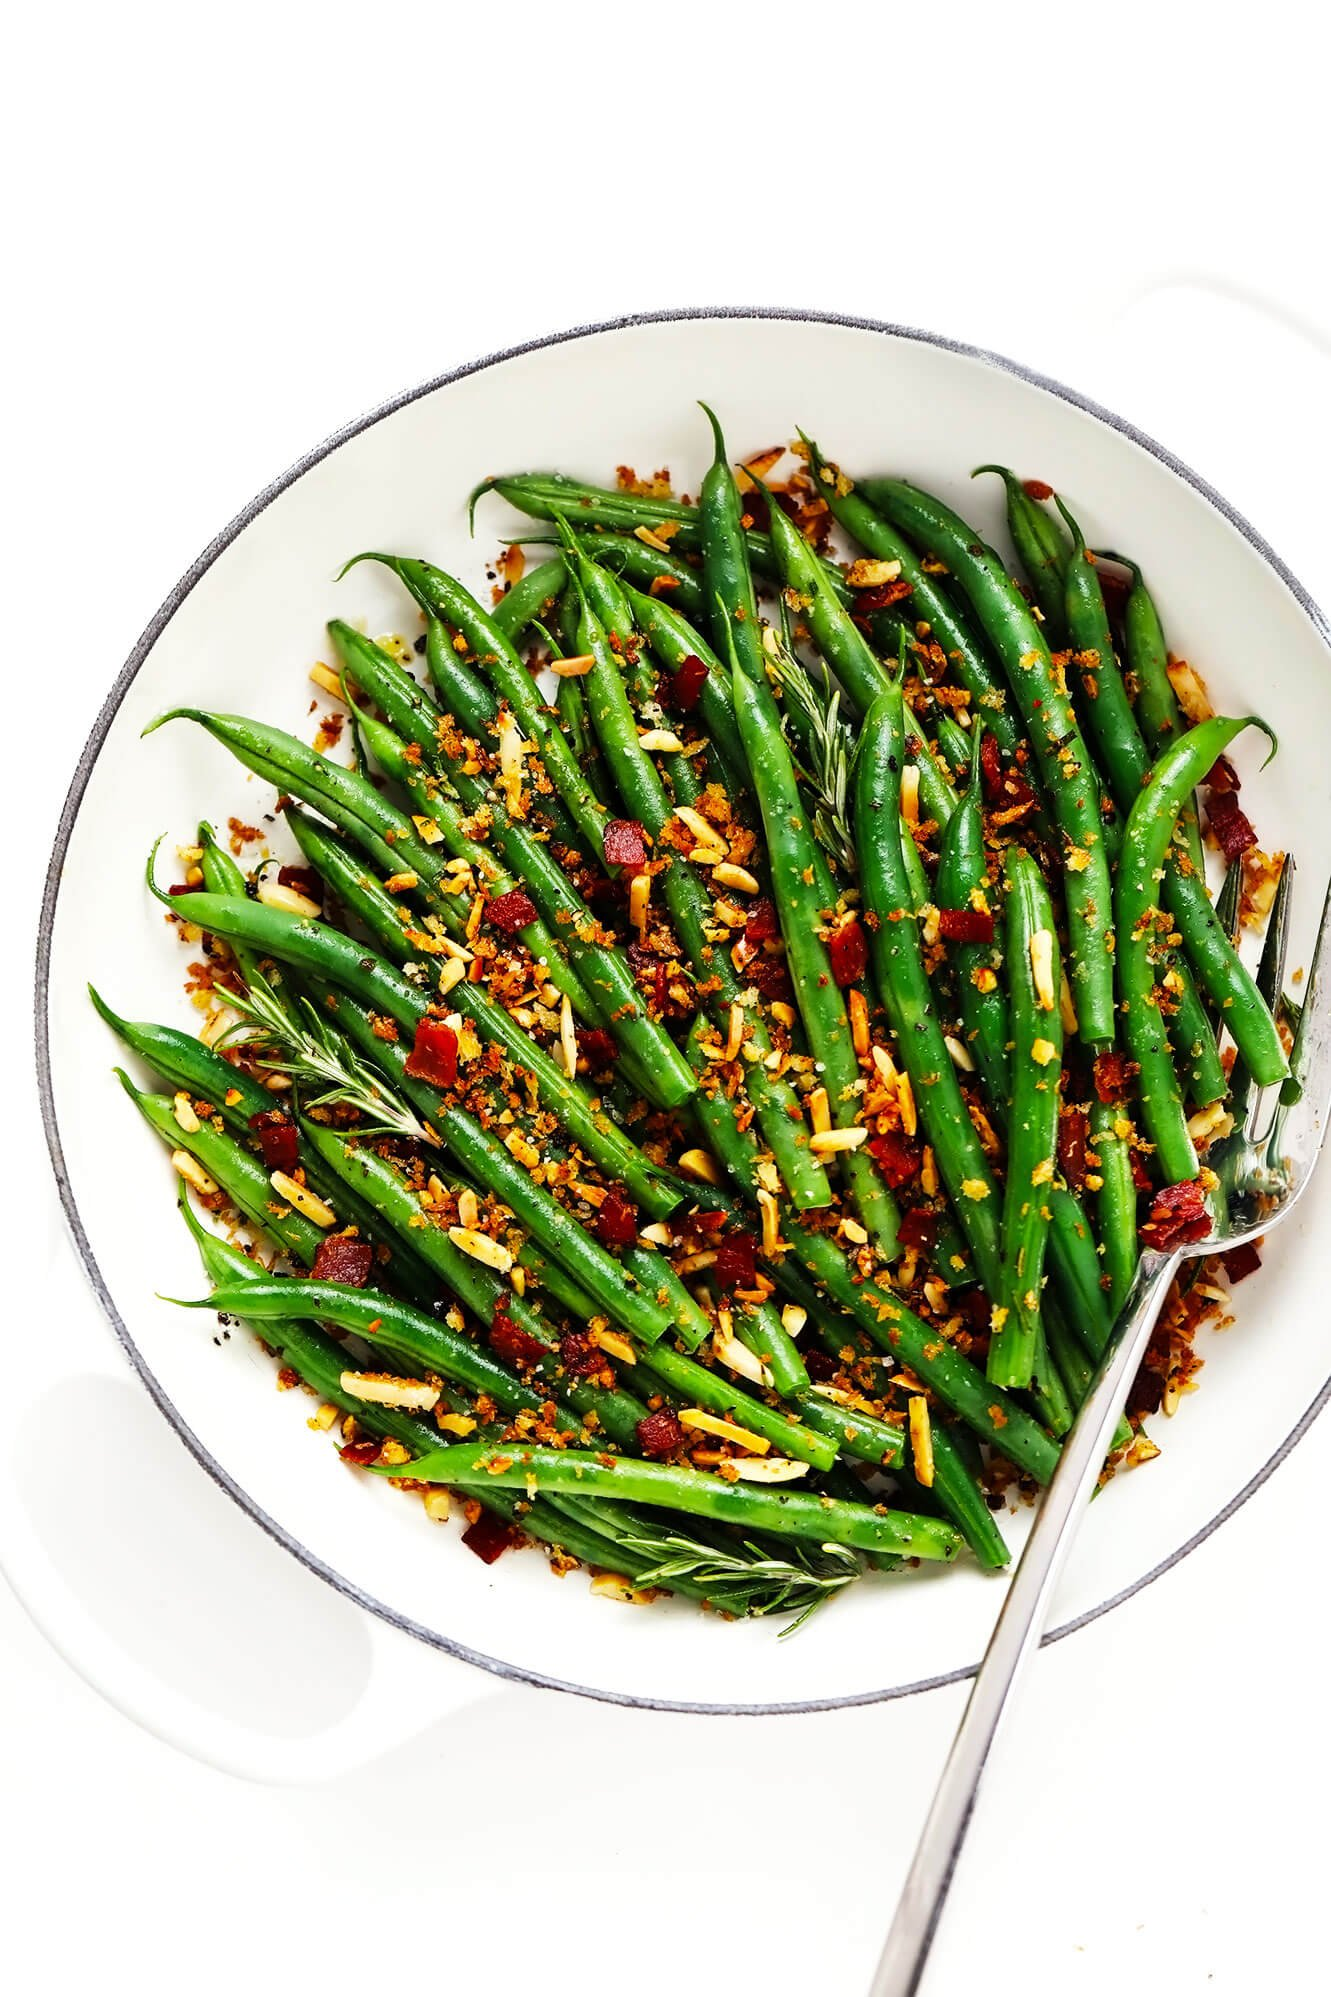 Green Beans with Bacon Breadcrumbs in Saute Pan with Fork